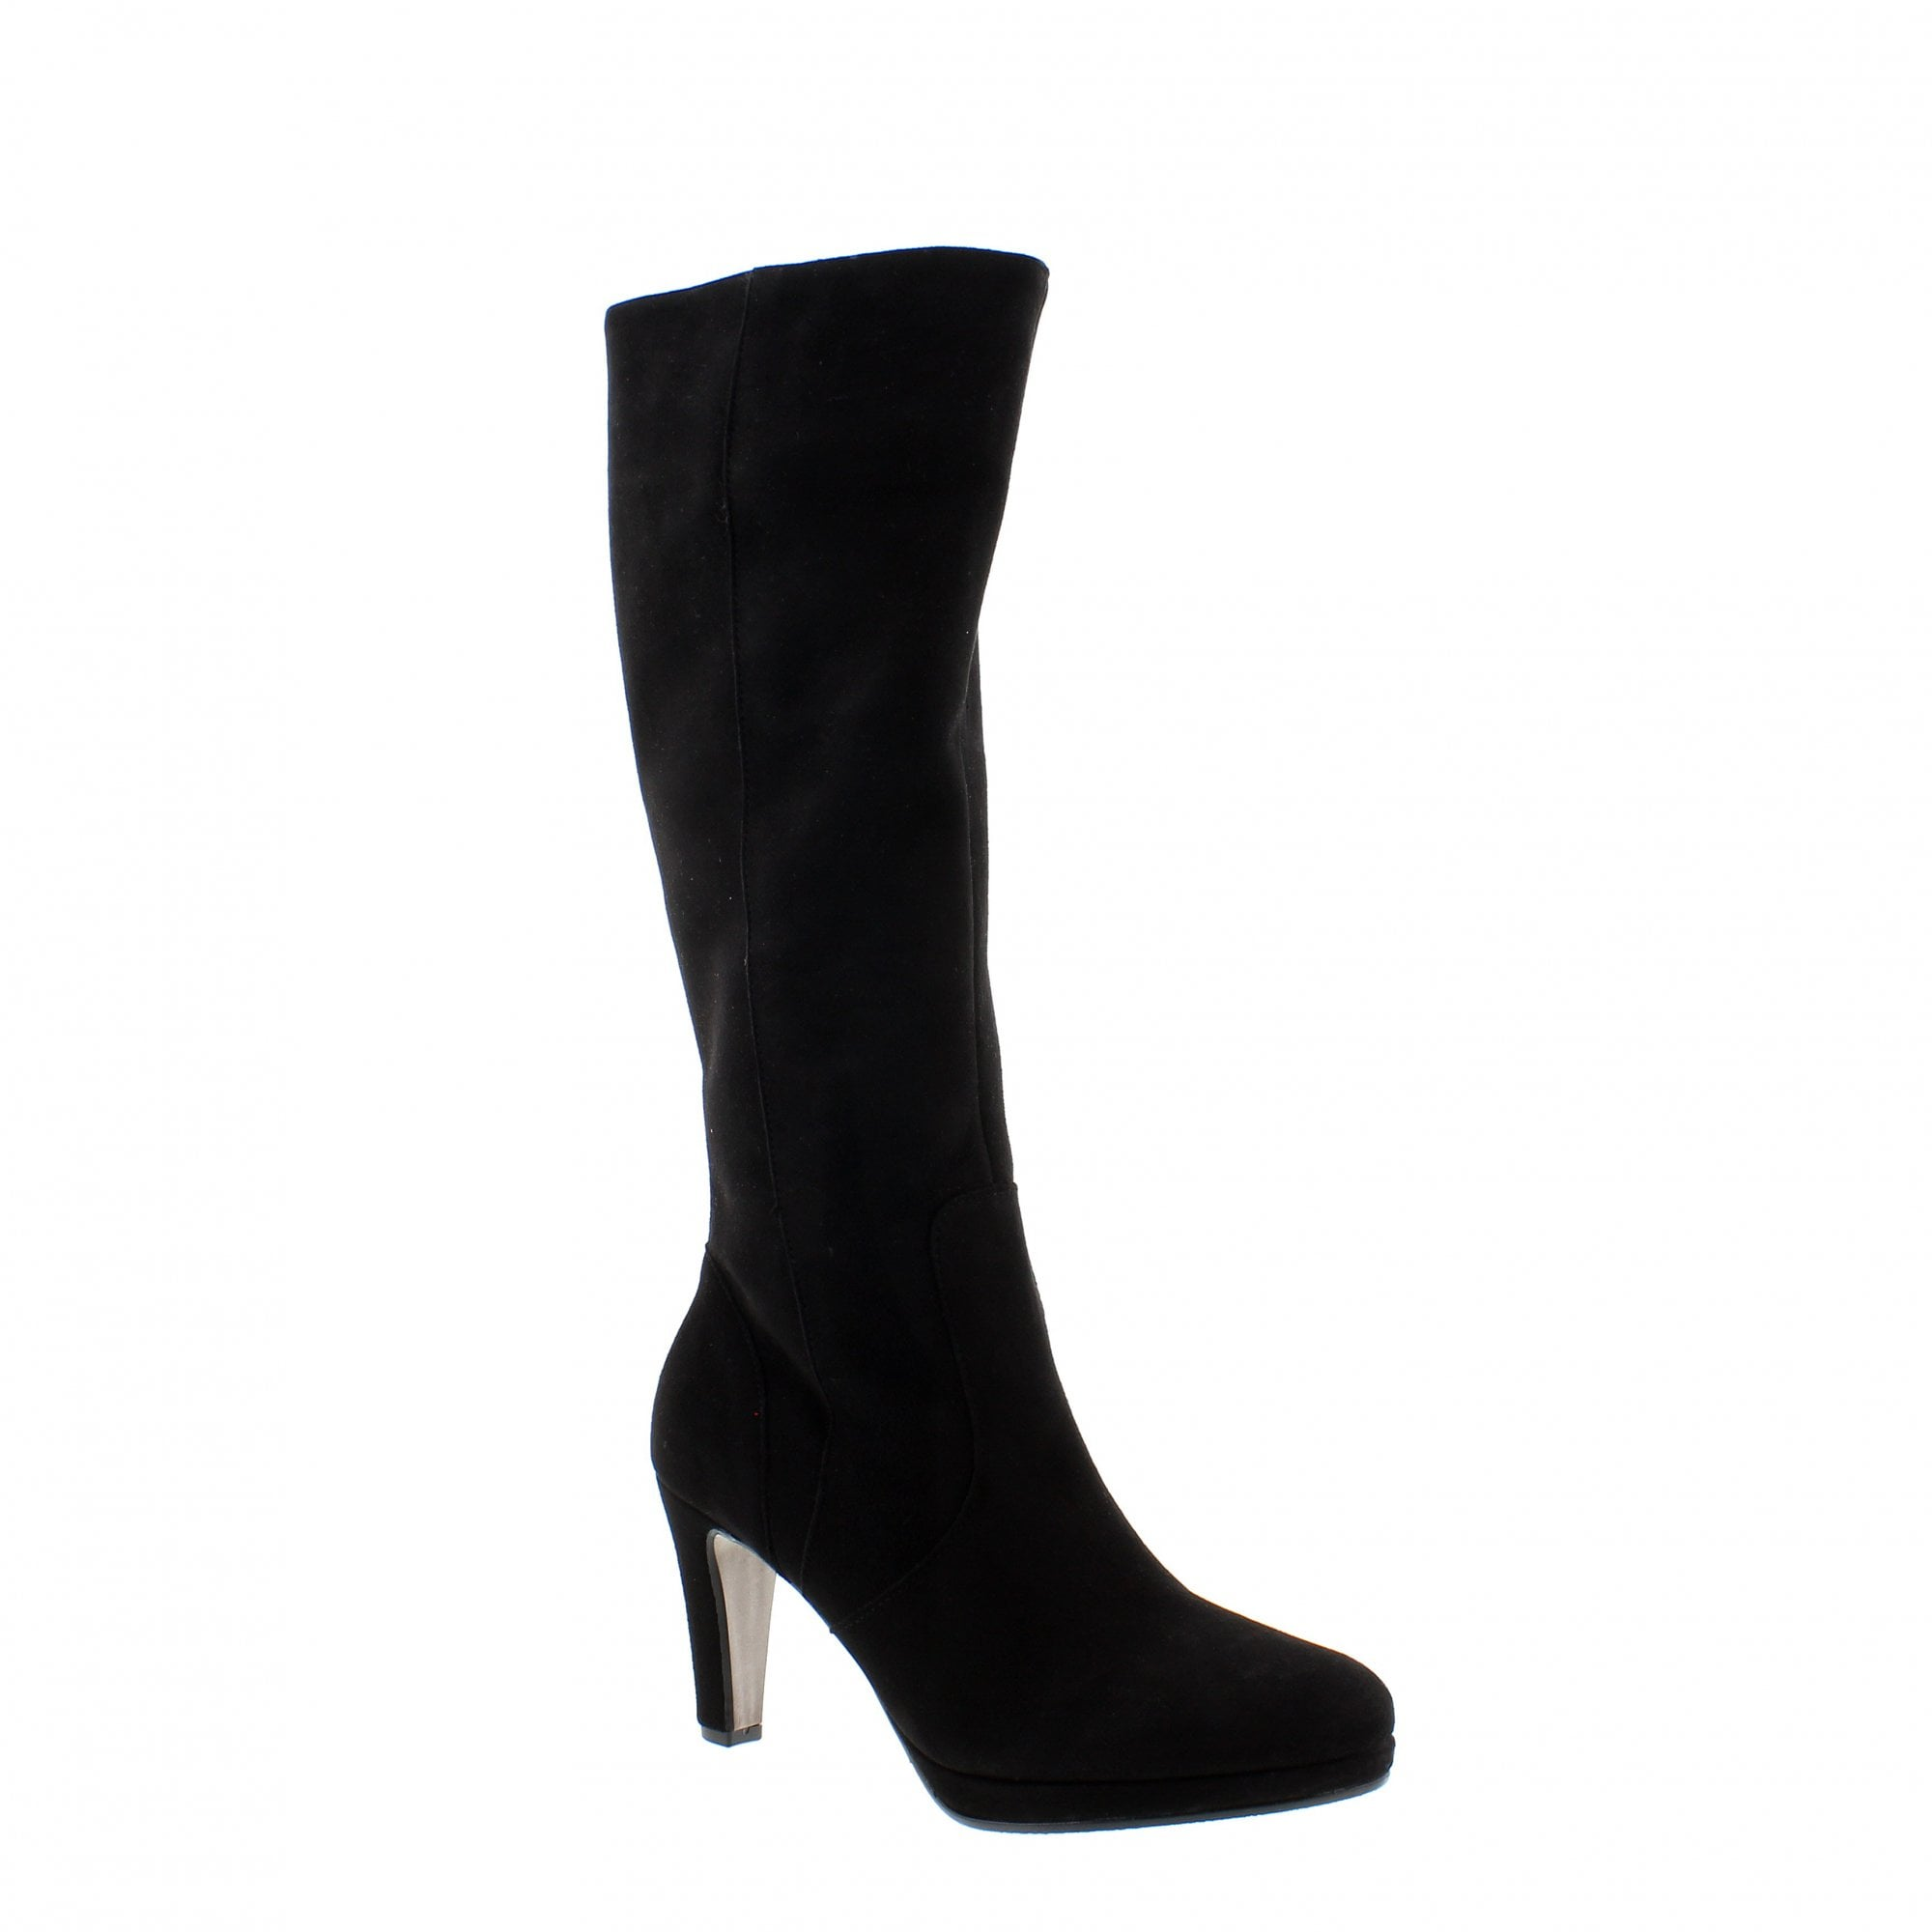 speical offer latest reliable quality Gabor Drama 36-869-17 Black Suede Knee High Boots | Rogerson Shoes